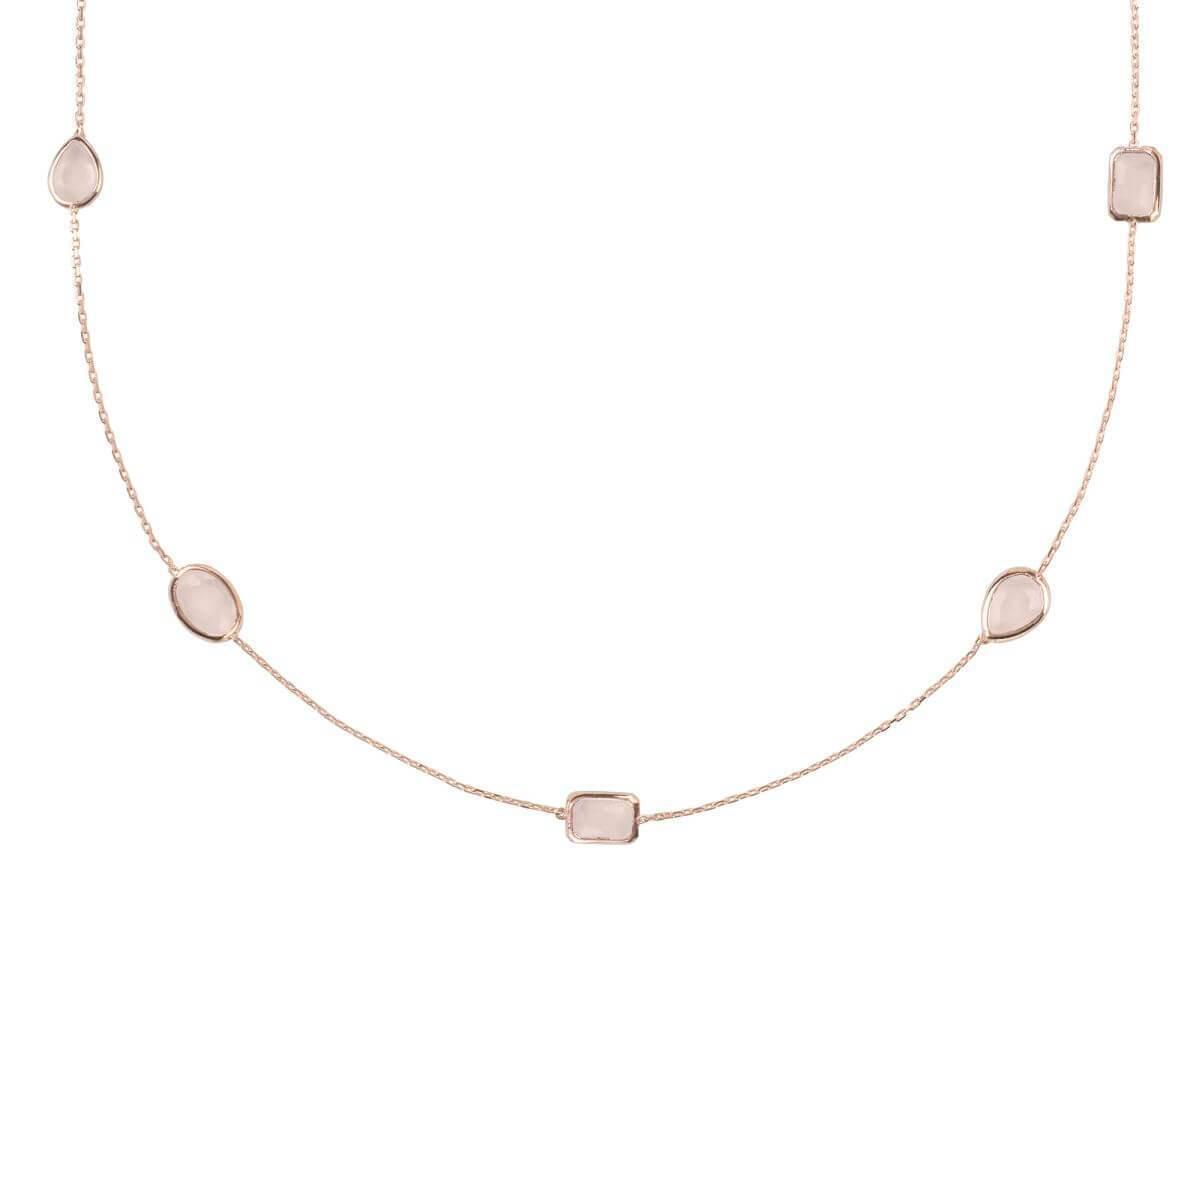 Latelita London Venice Long Chain Necklace Rose Gold Amethyst